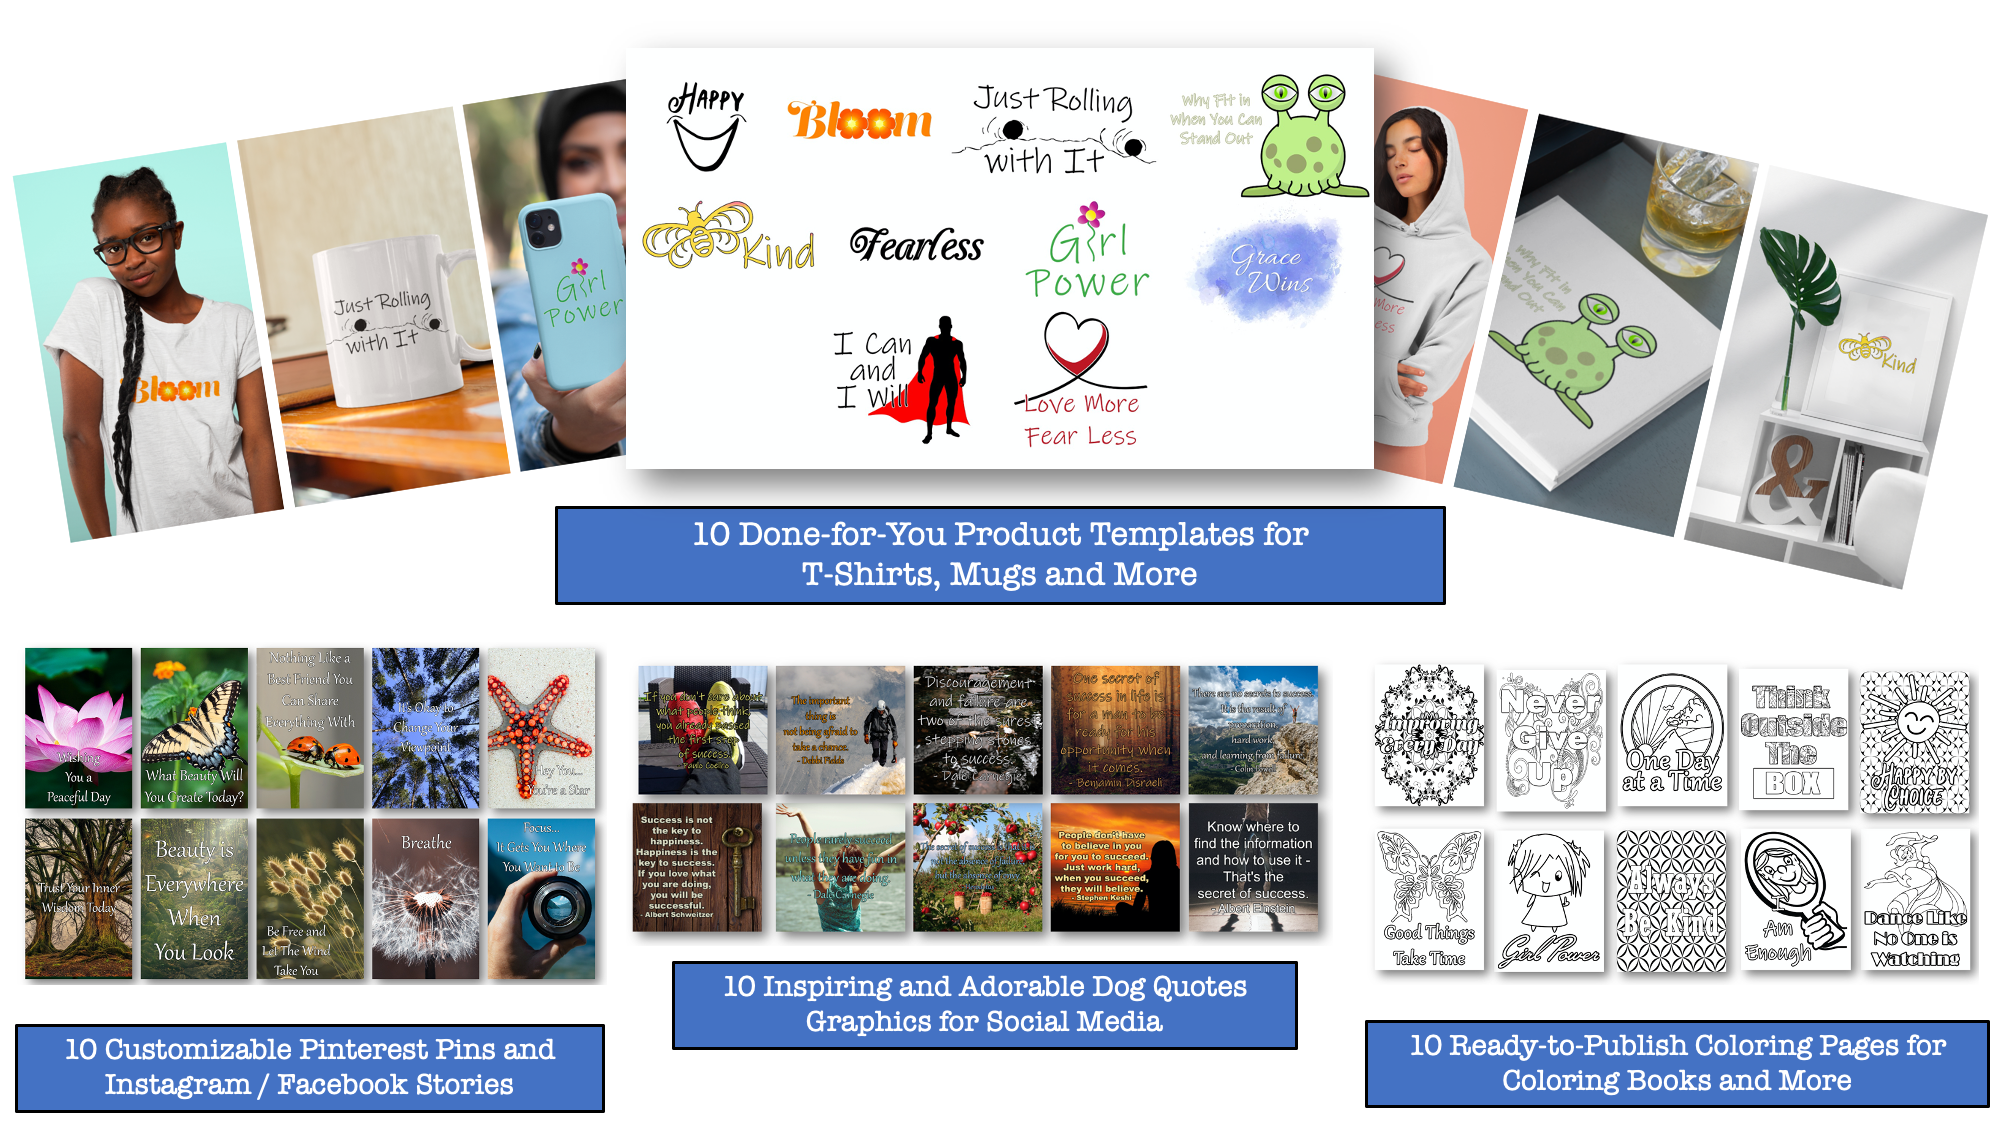 Inspiration Niche Product Templates, Coloring Pages and More